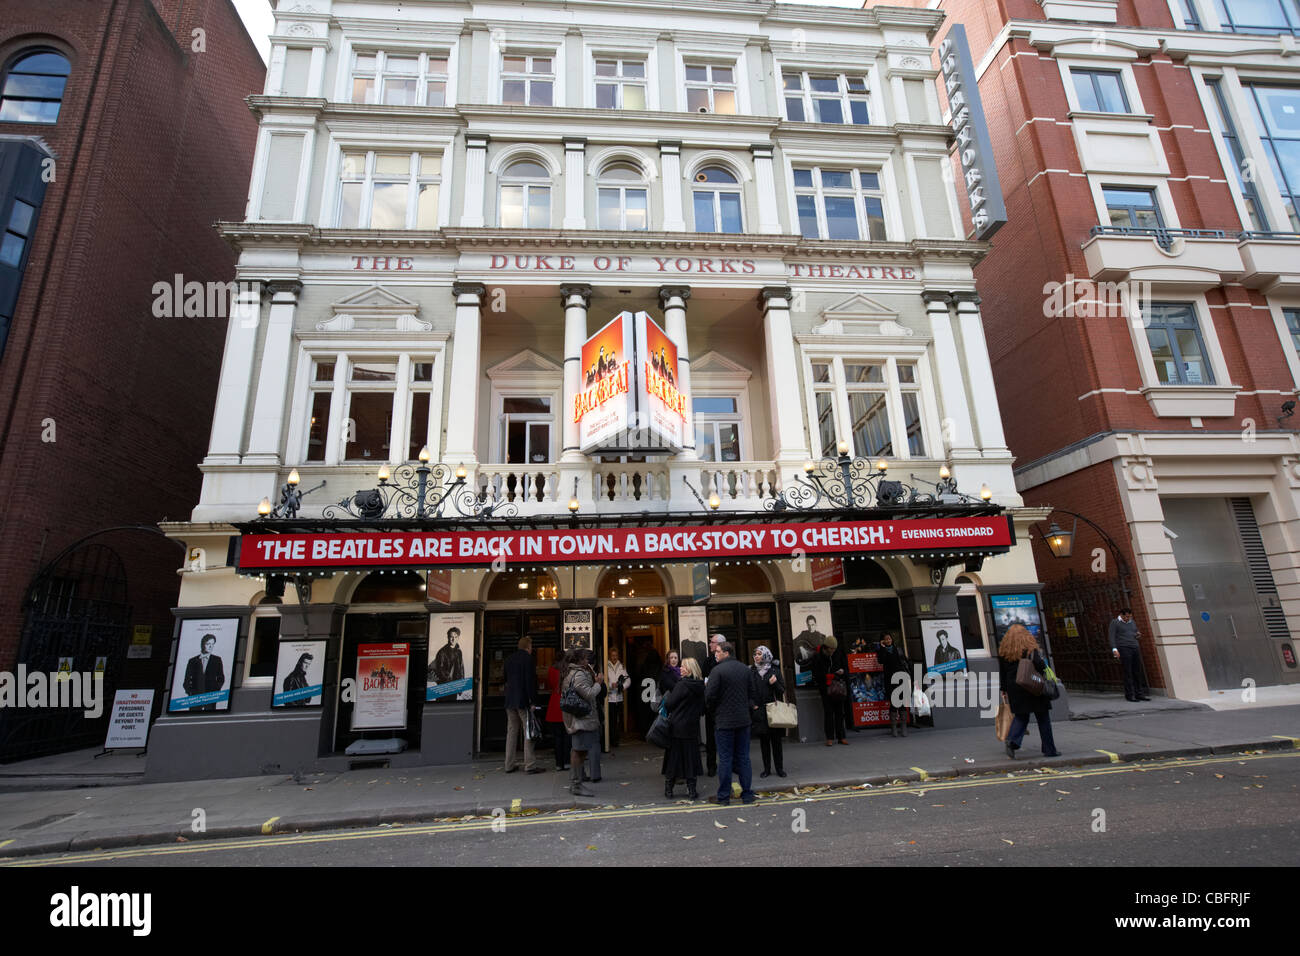 the duke of york's theatre showing backbeat the beatles story in theatreland west end london england uk united - Stock Image